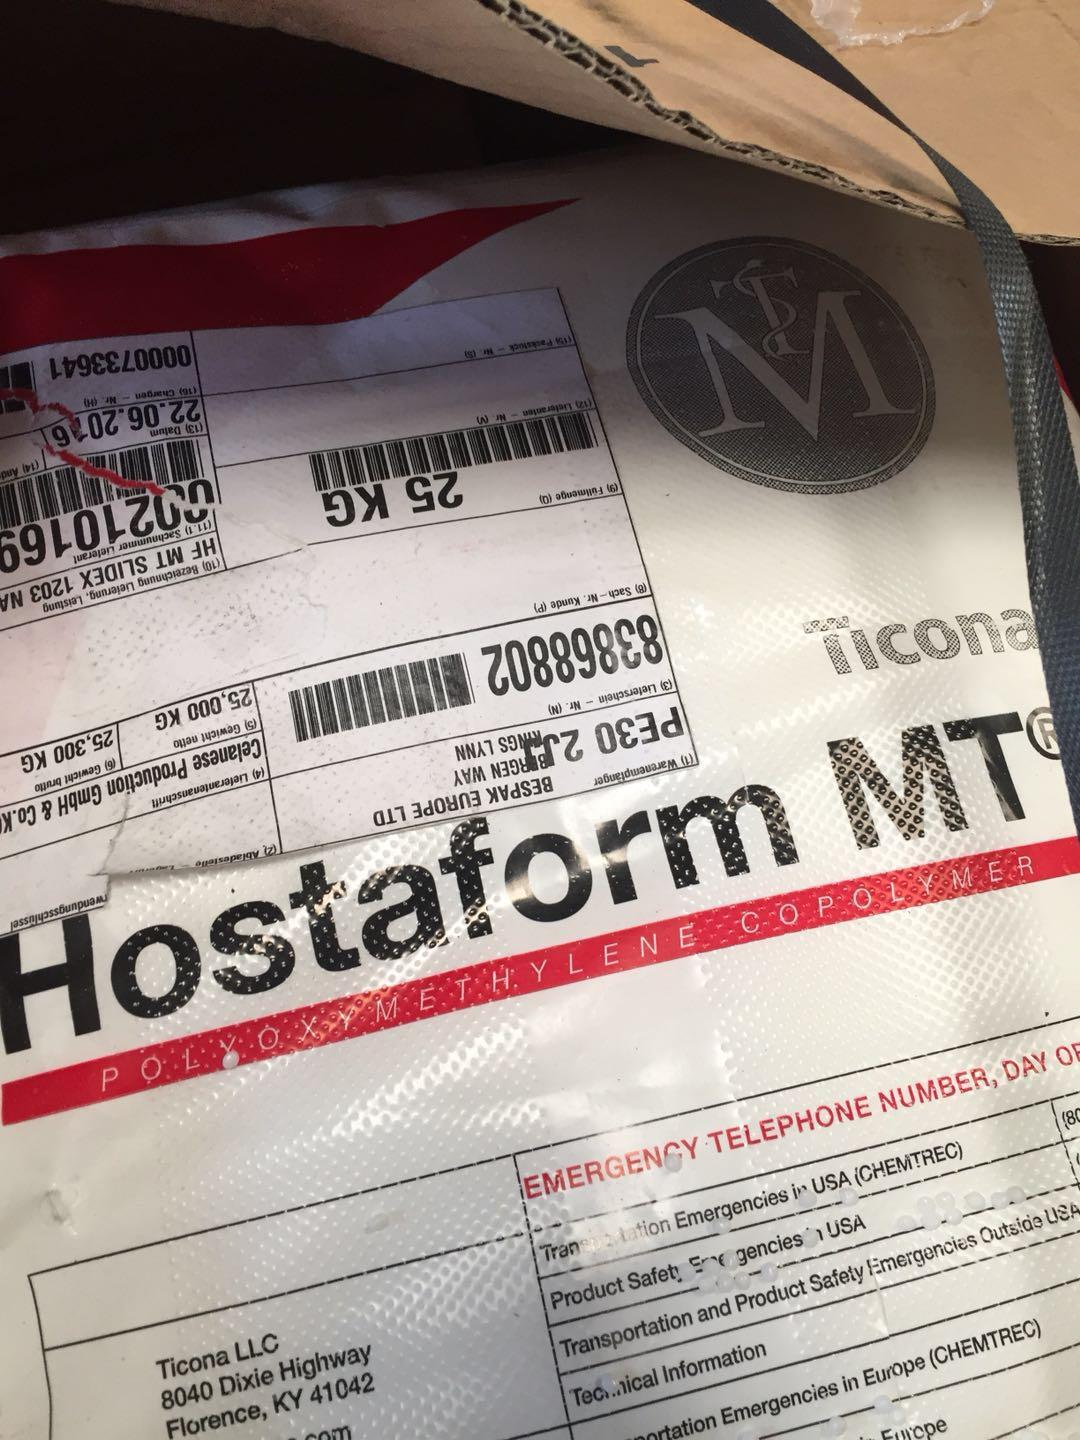 Hostaform MT SlideX 1203 Medical